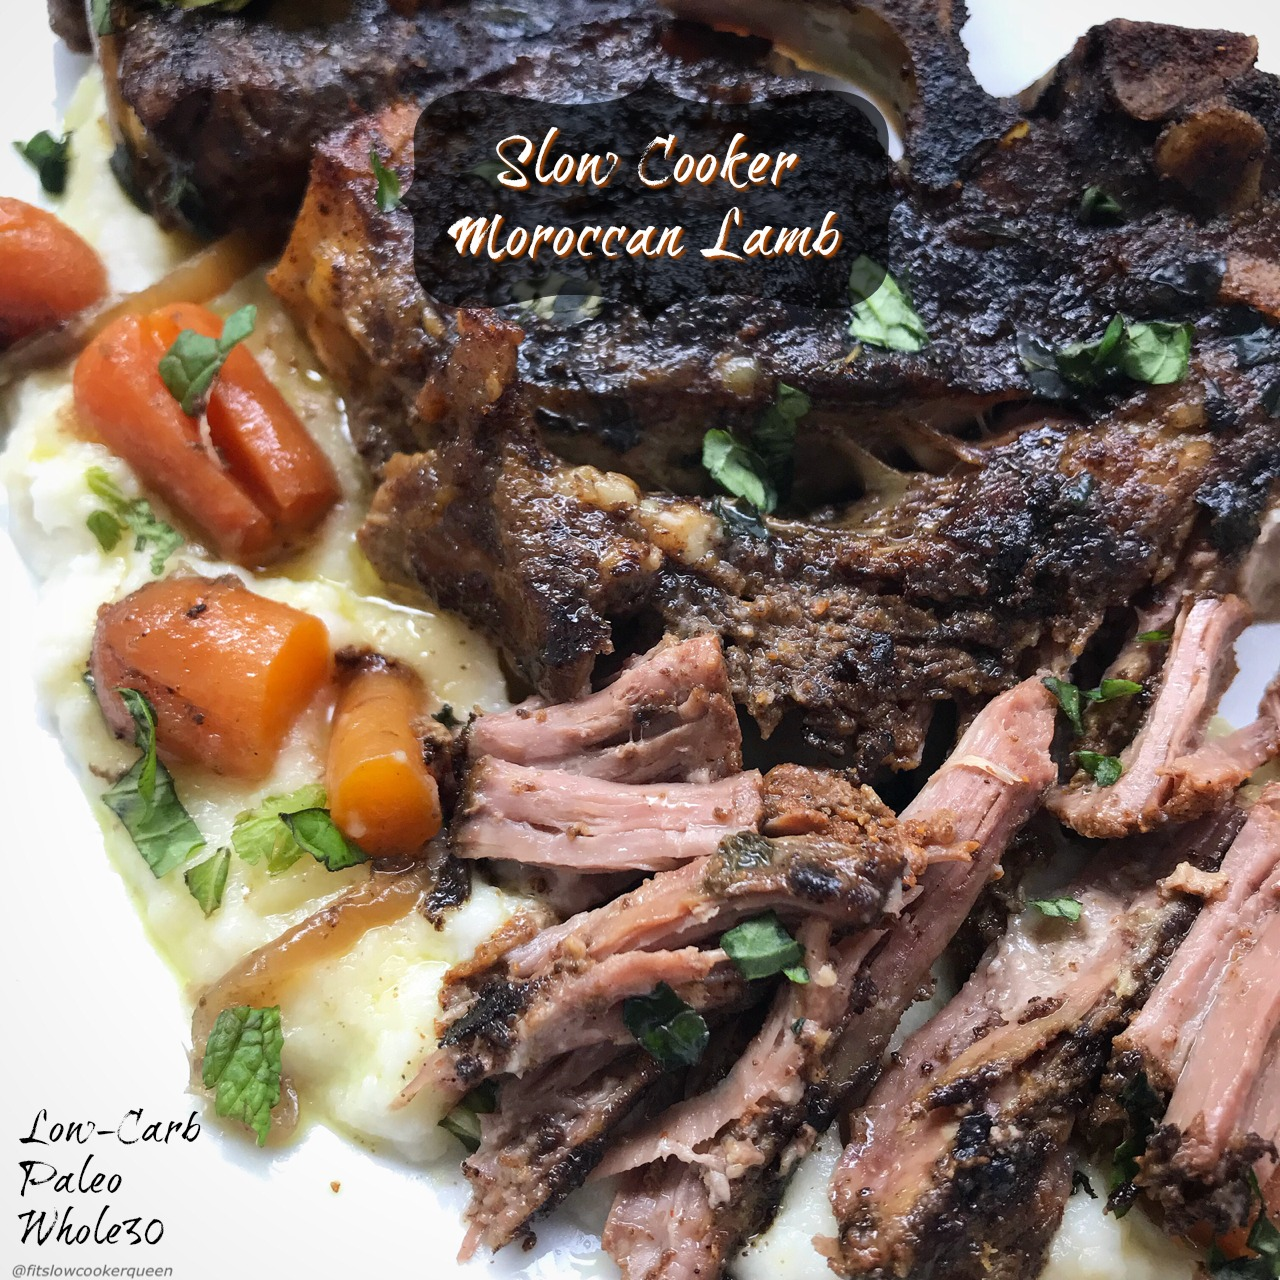 Slow Cooker Moroccan Lamb Paleo Whole30 Fit Slow Cooker Queen